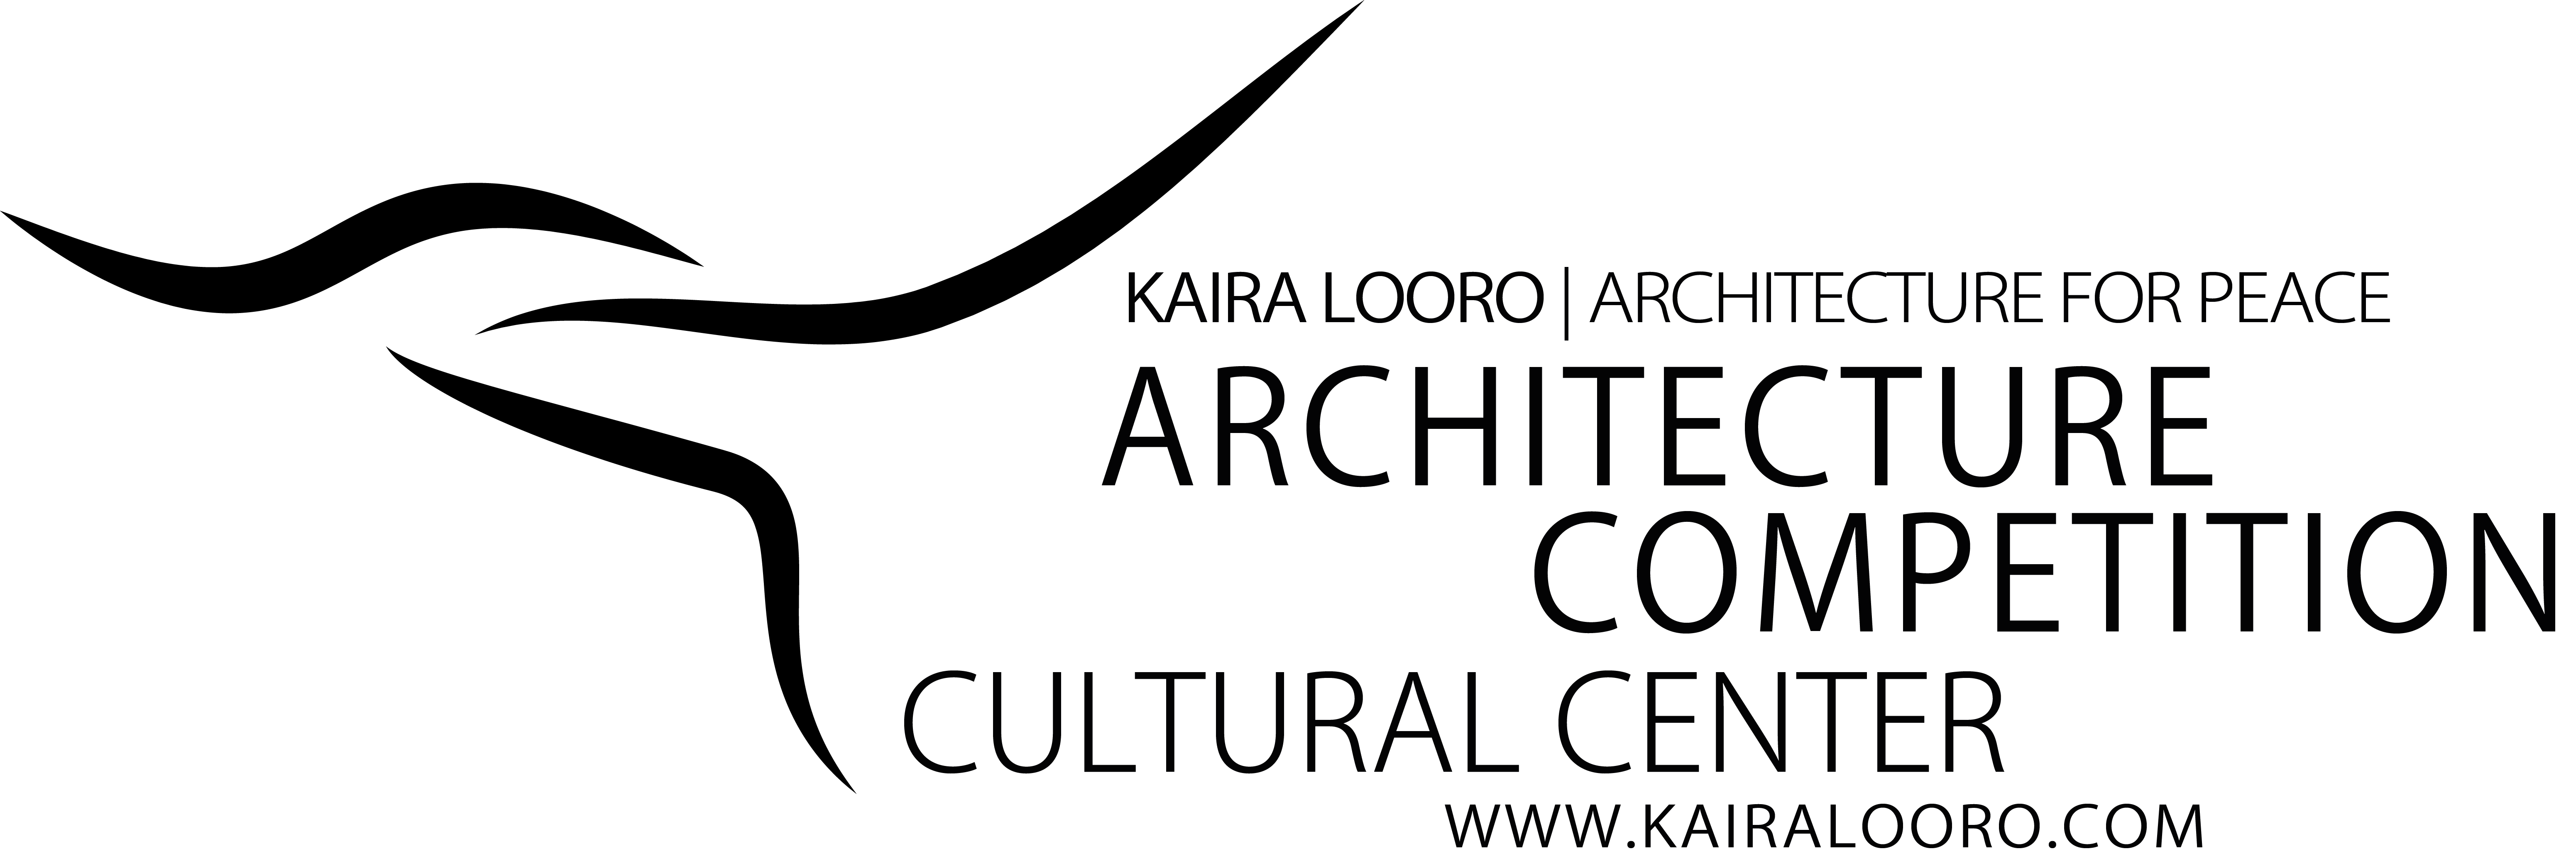 Kaira Looro Architecture Competition Cultural Center